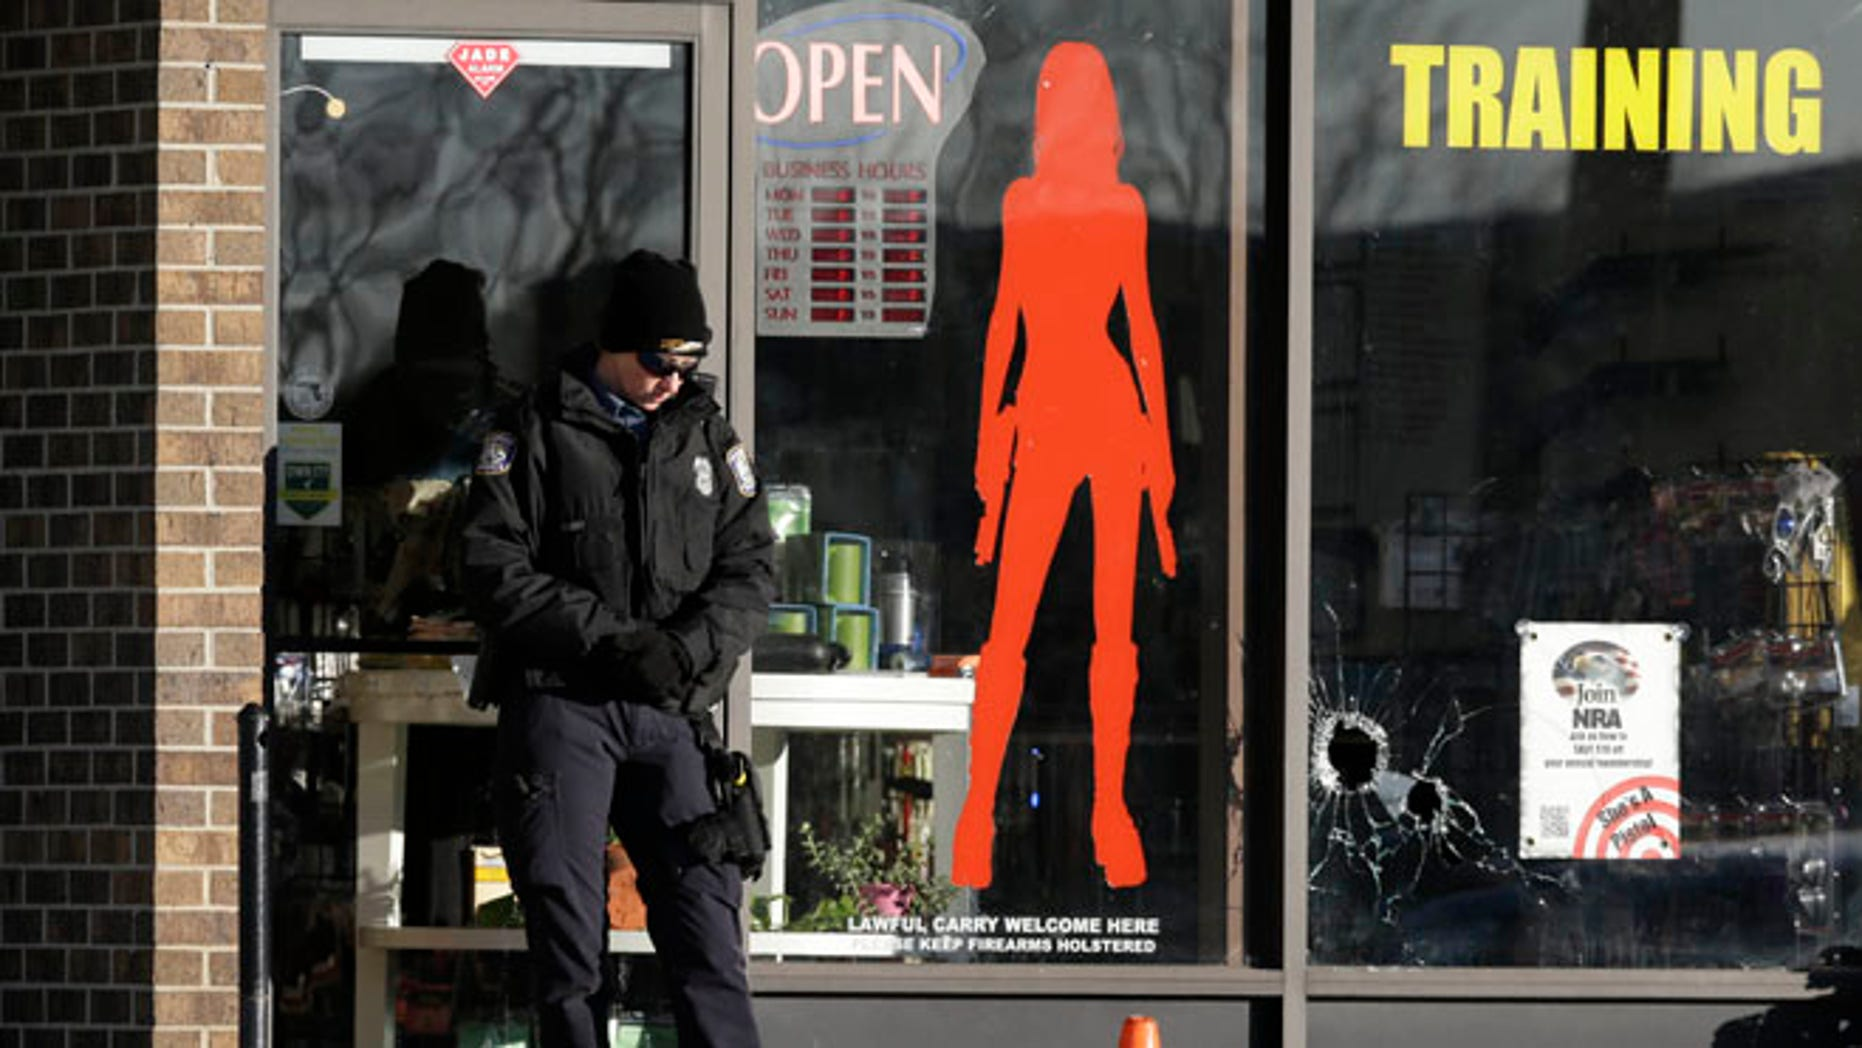 Jan. 9, 2015: A Law enforcement officer guards the scene of a shooting at She's a Pistol, LLC, a gun shop in Shawnee, Kan. (AP)